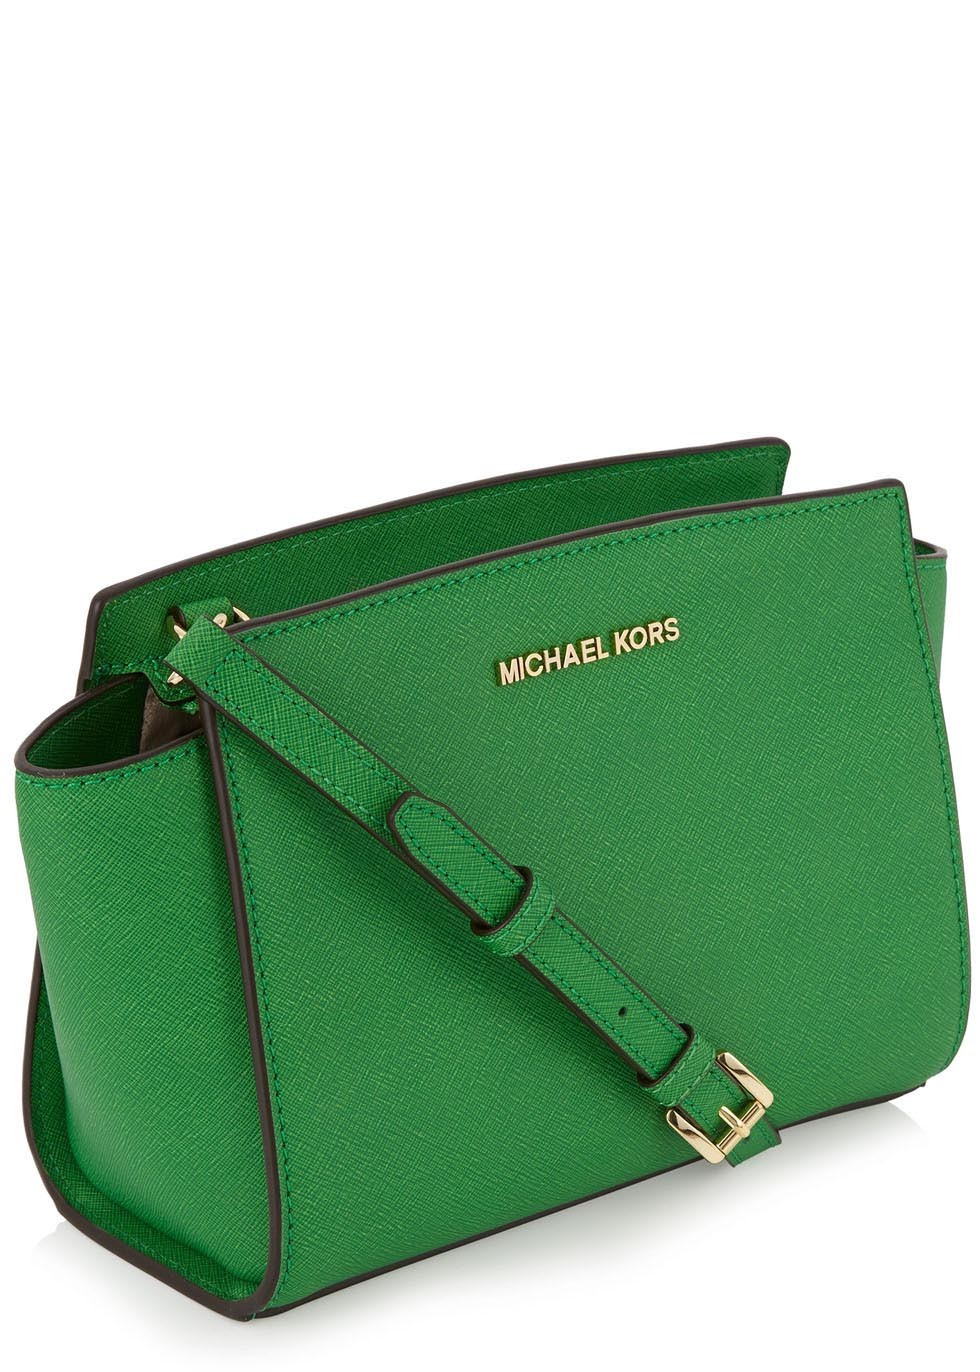 038375f69fa6 ... norway michael kors selma green saffiano crossbody bag in green lyst  62e63 a0b1b ...